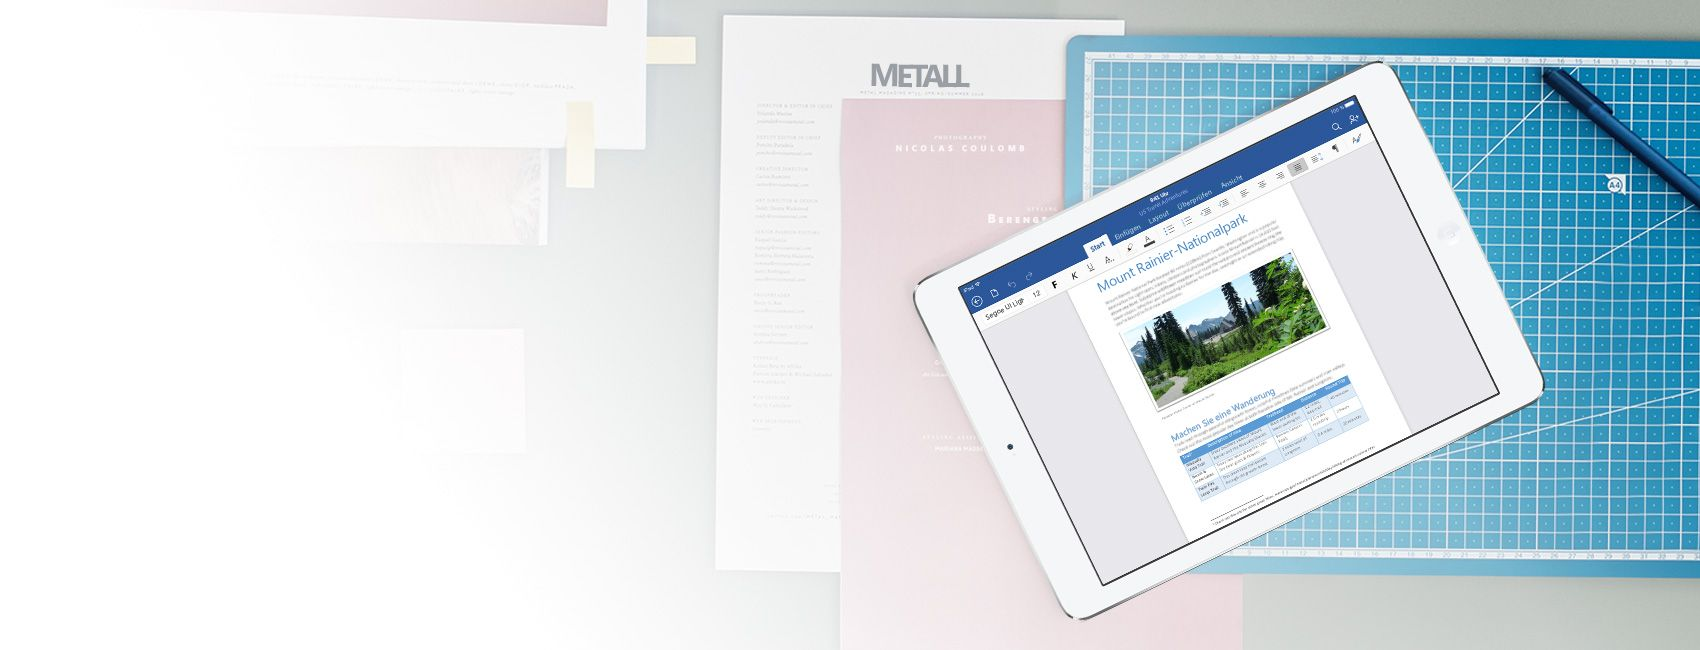 Office 365 Mobile-Apps für iOS | Word, Excel, PowerPoint